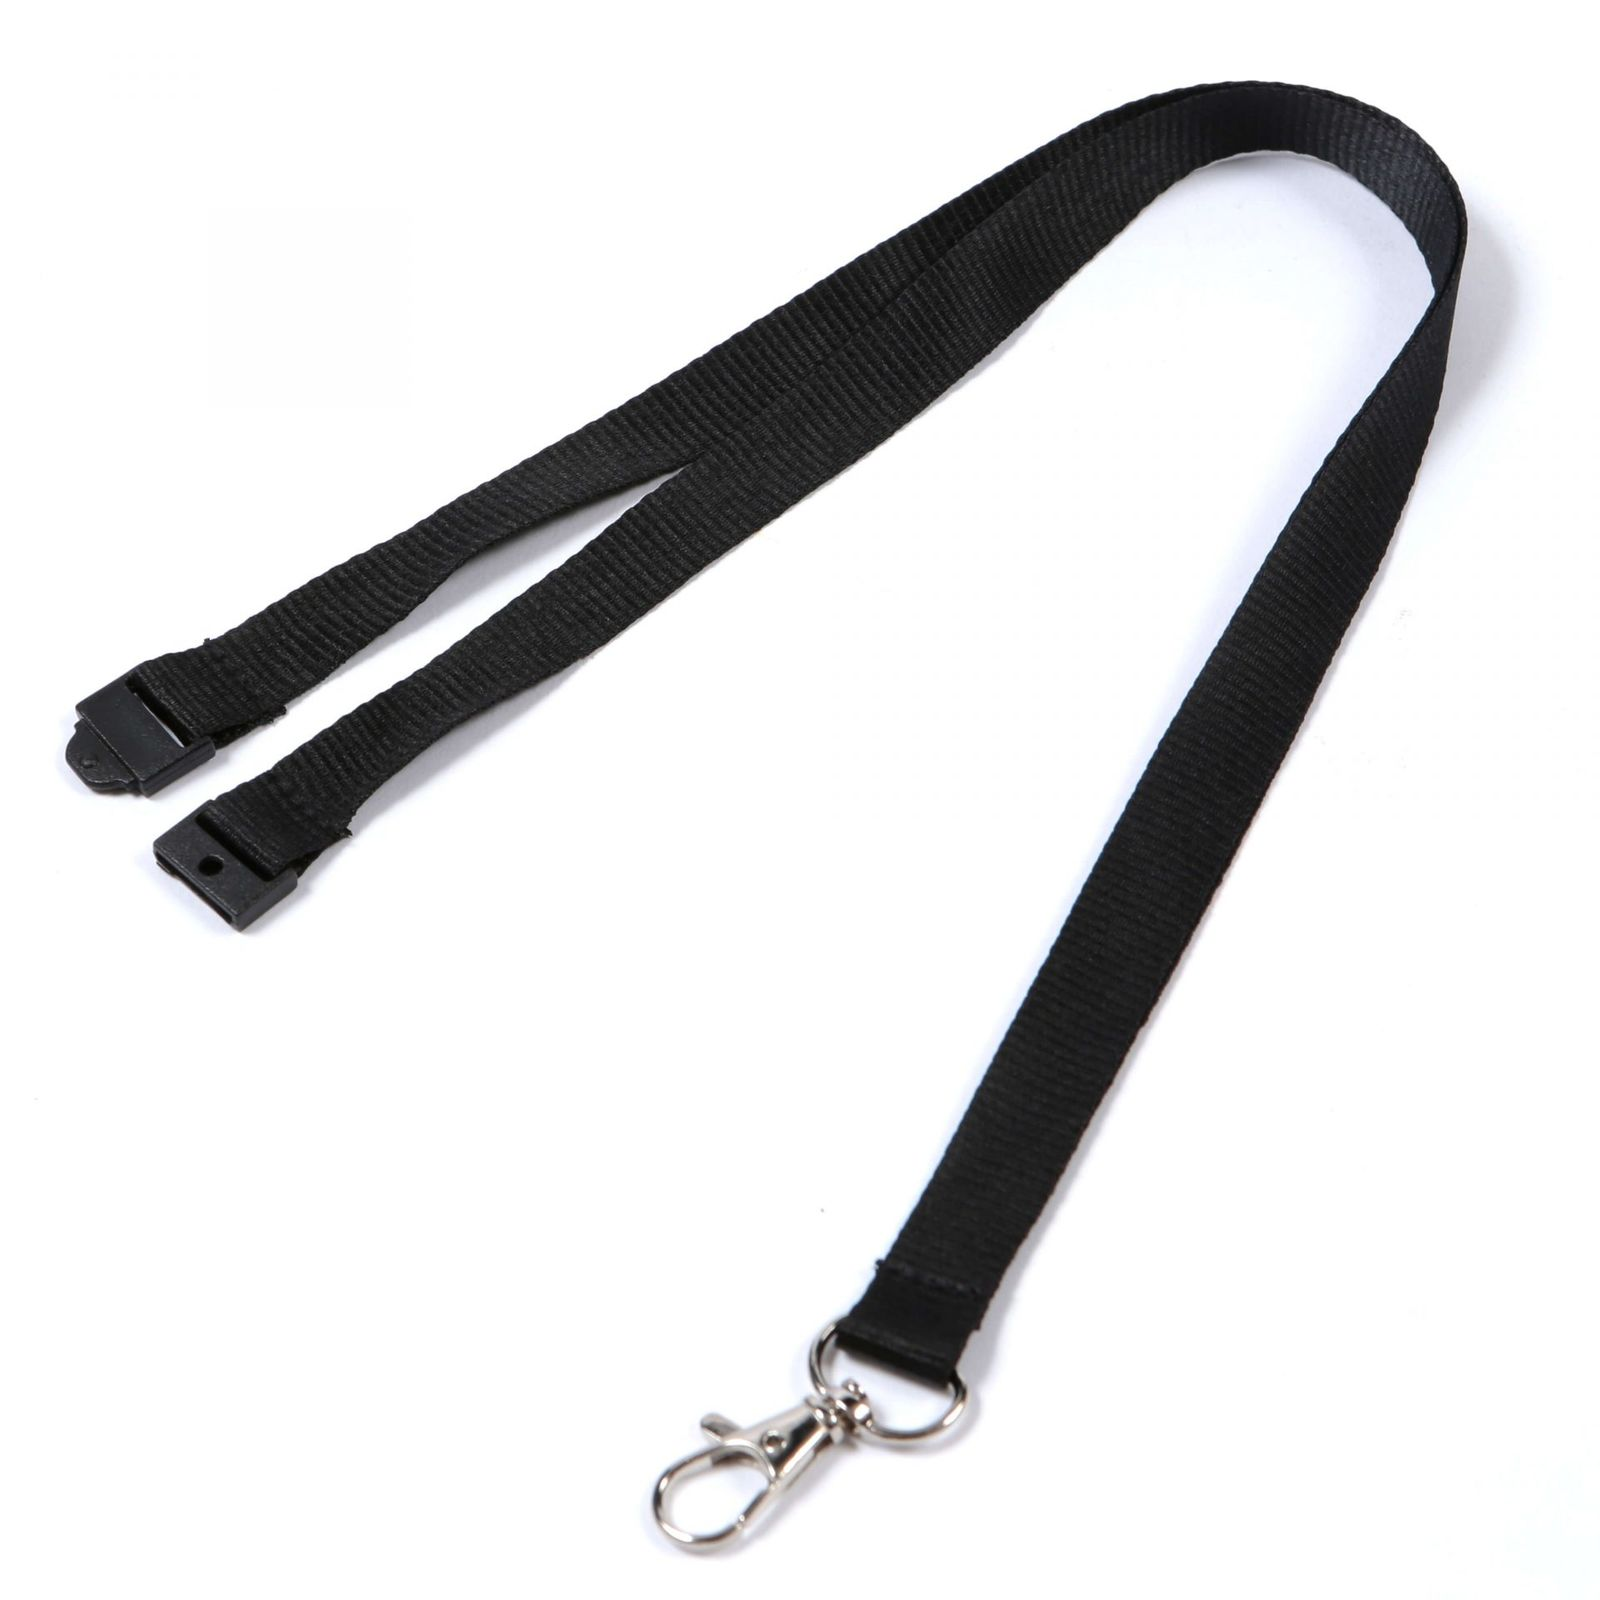 Buy Plain Black Lanyards Same-Day London Delivery on Lanyards Direct Today!